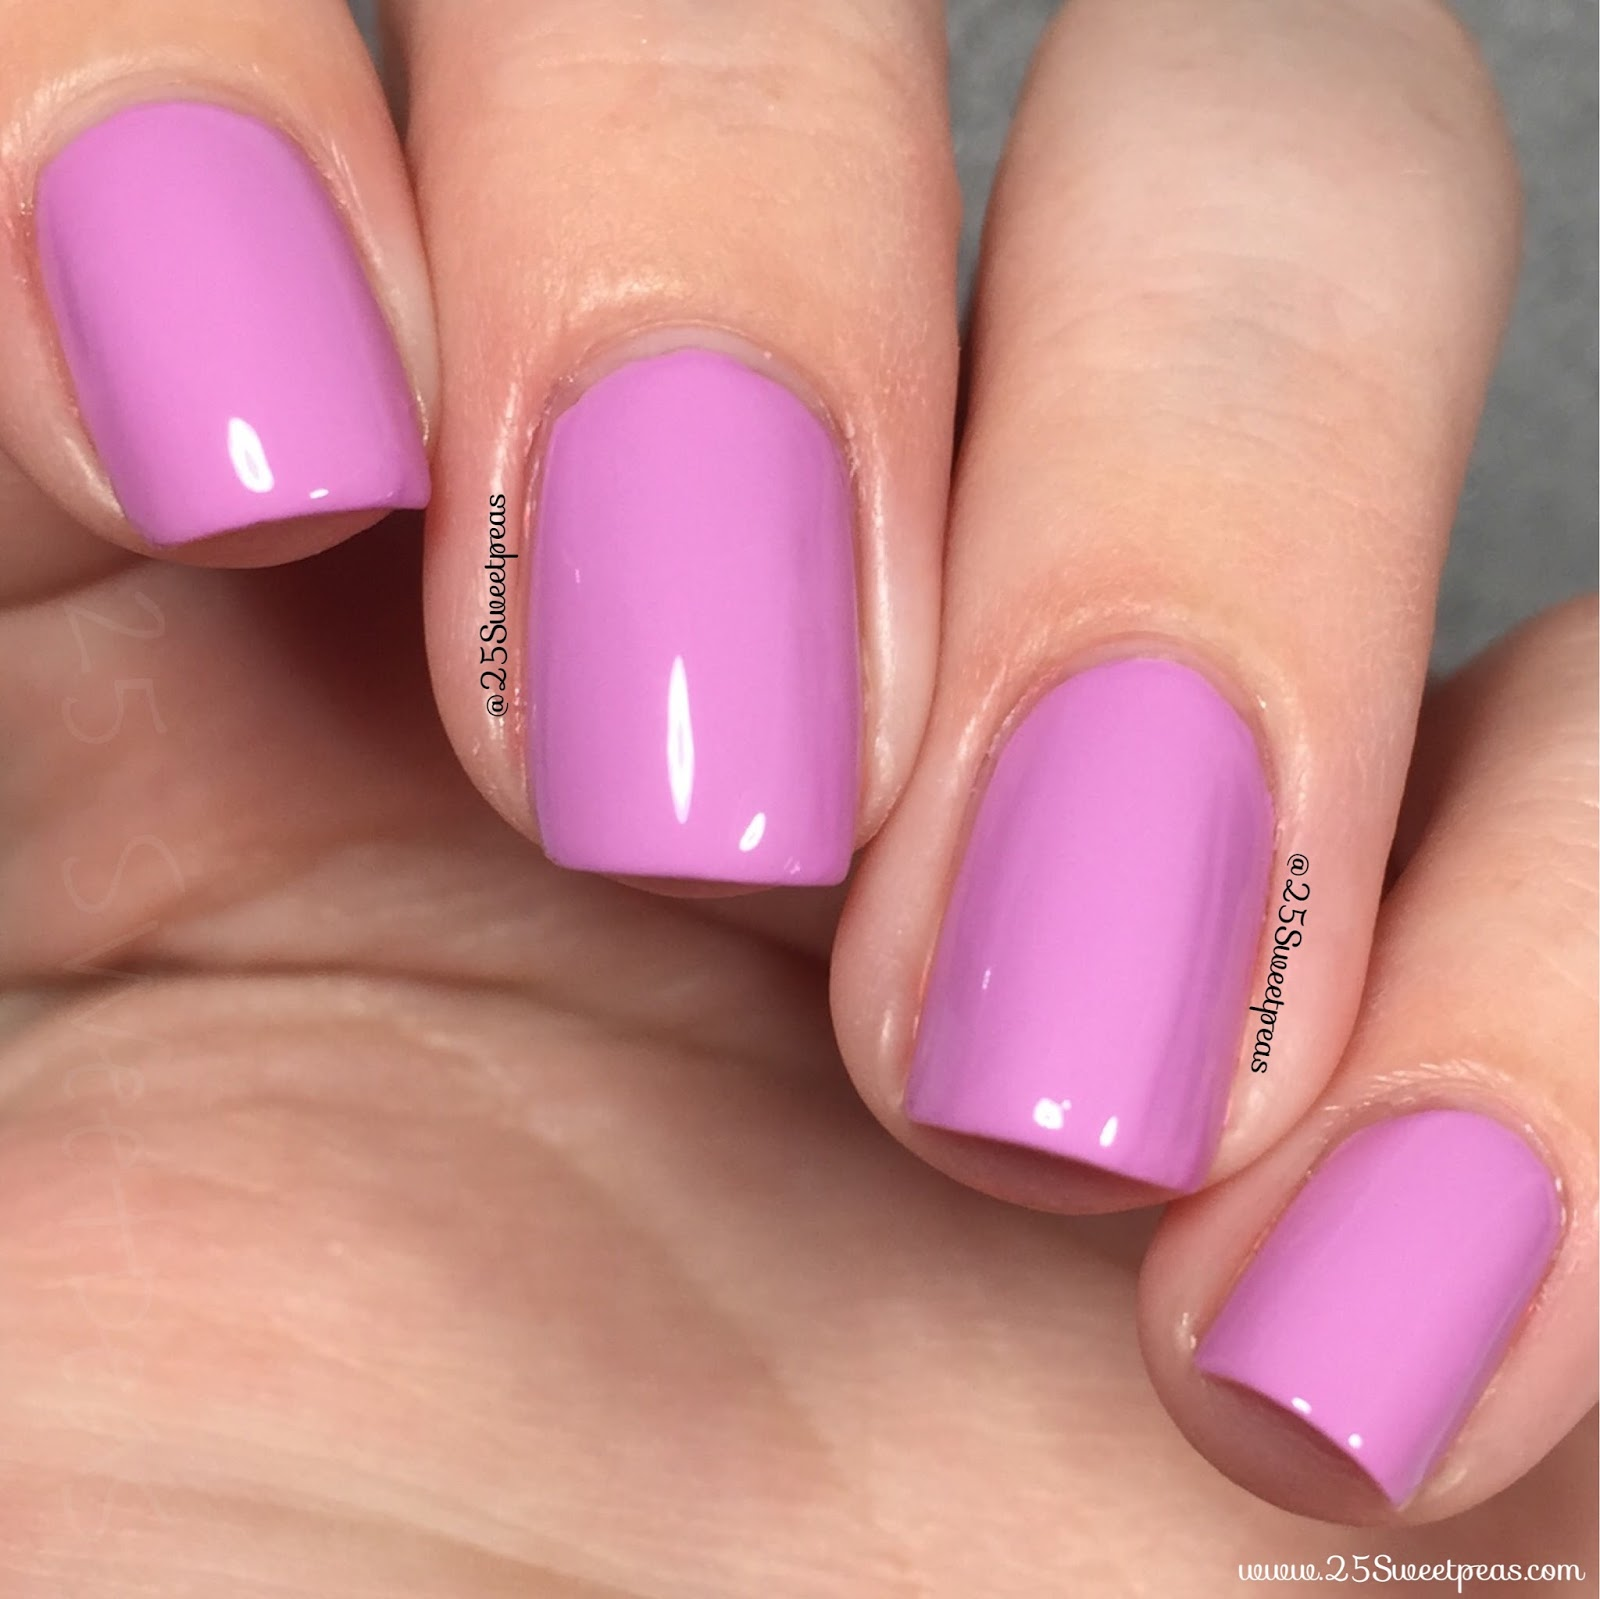 Julie G Nail Polish Dream in Pretty